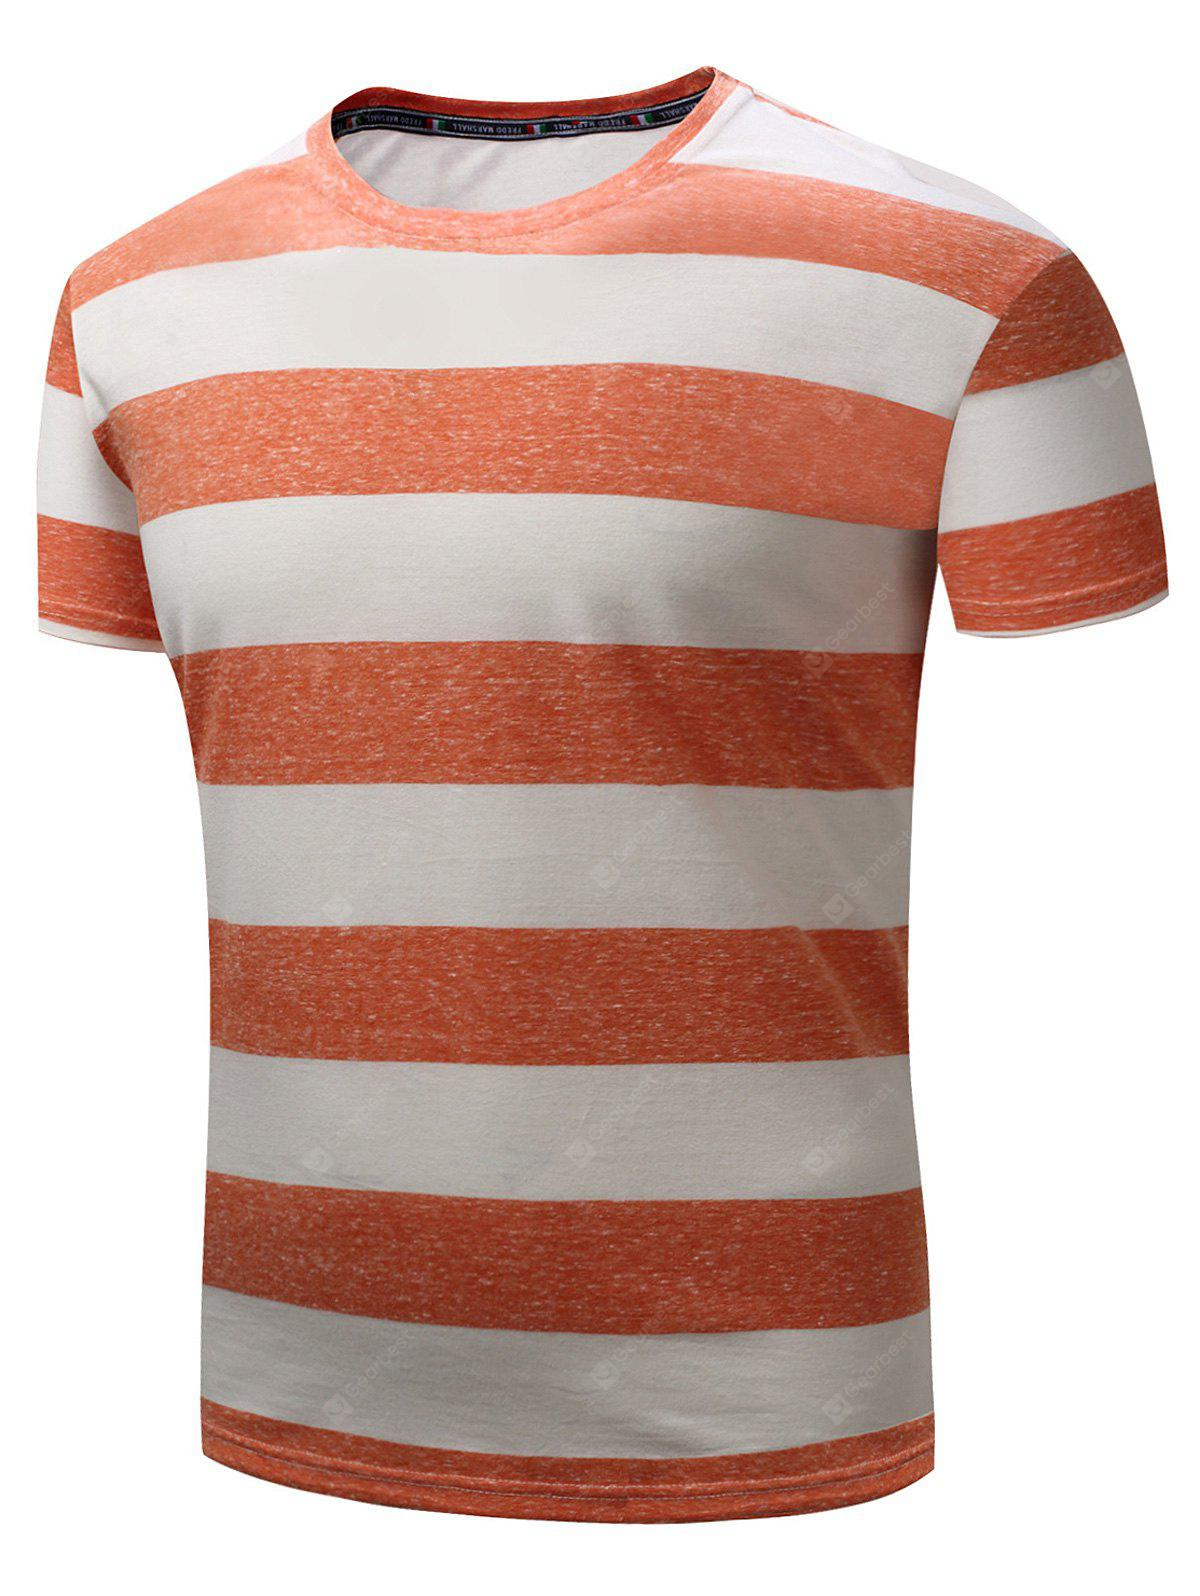 T-shirt a righe larghe a manica